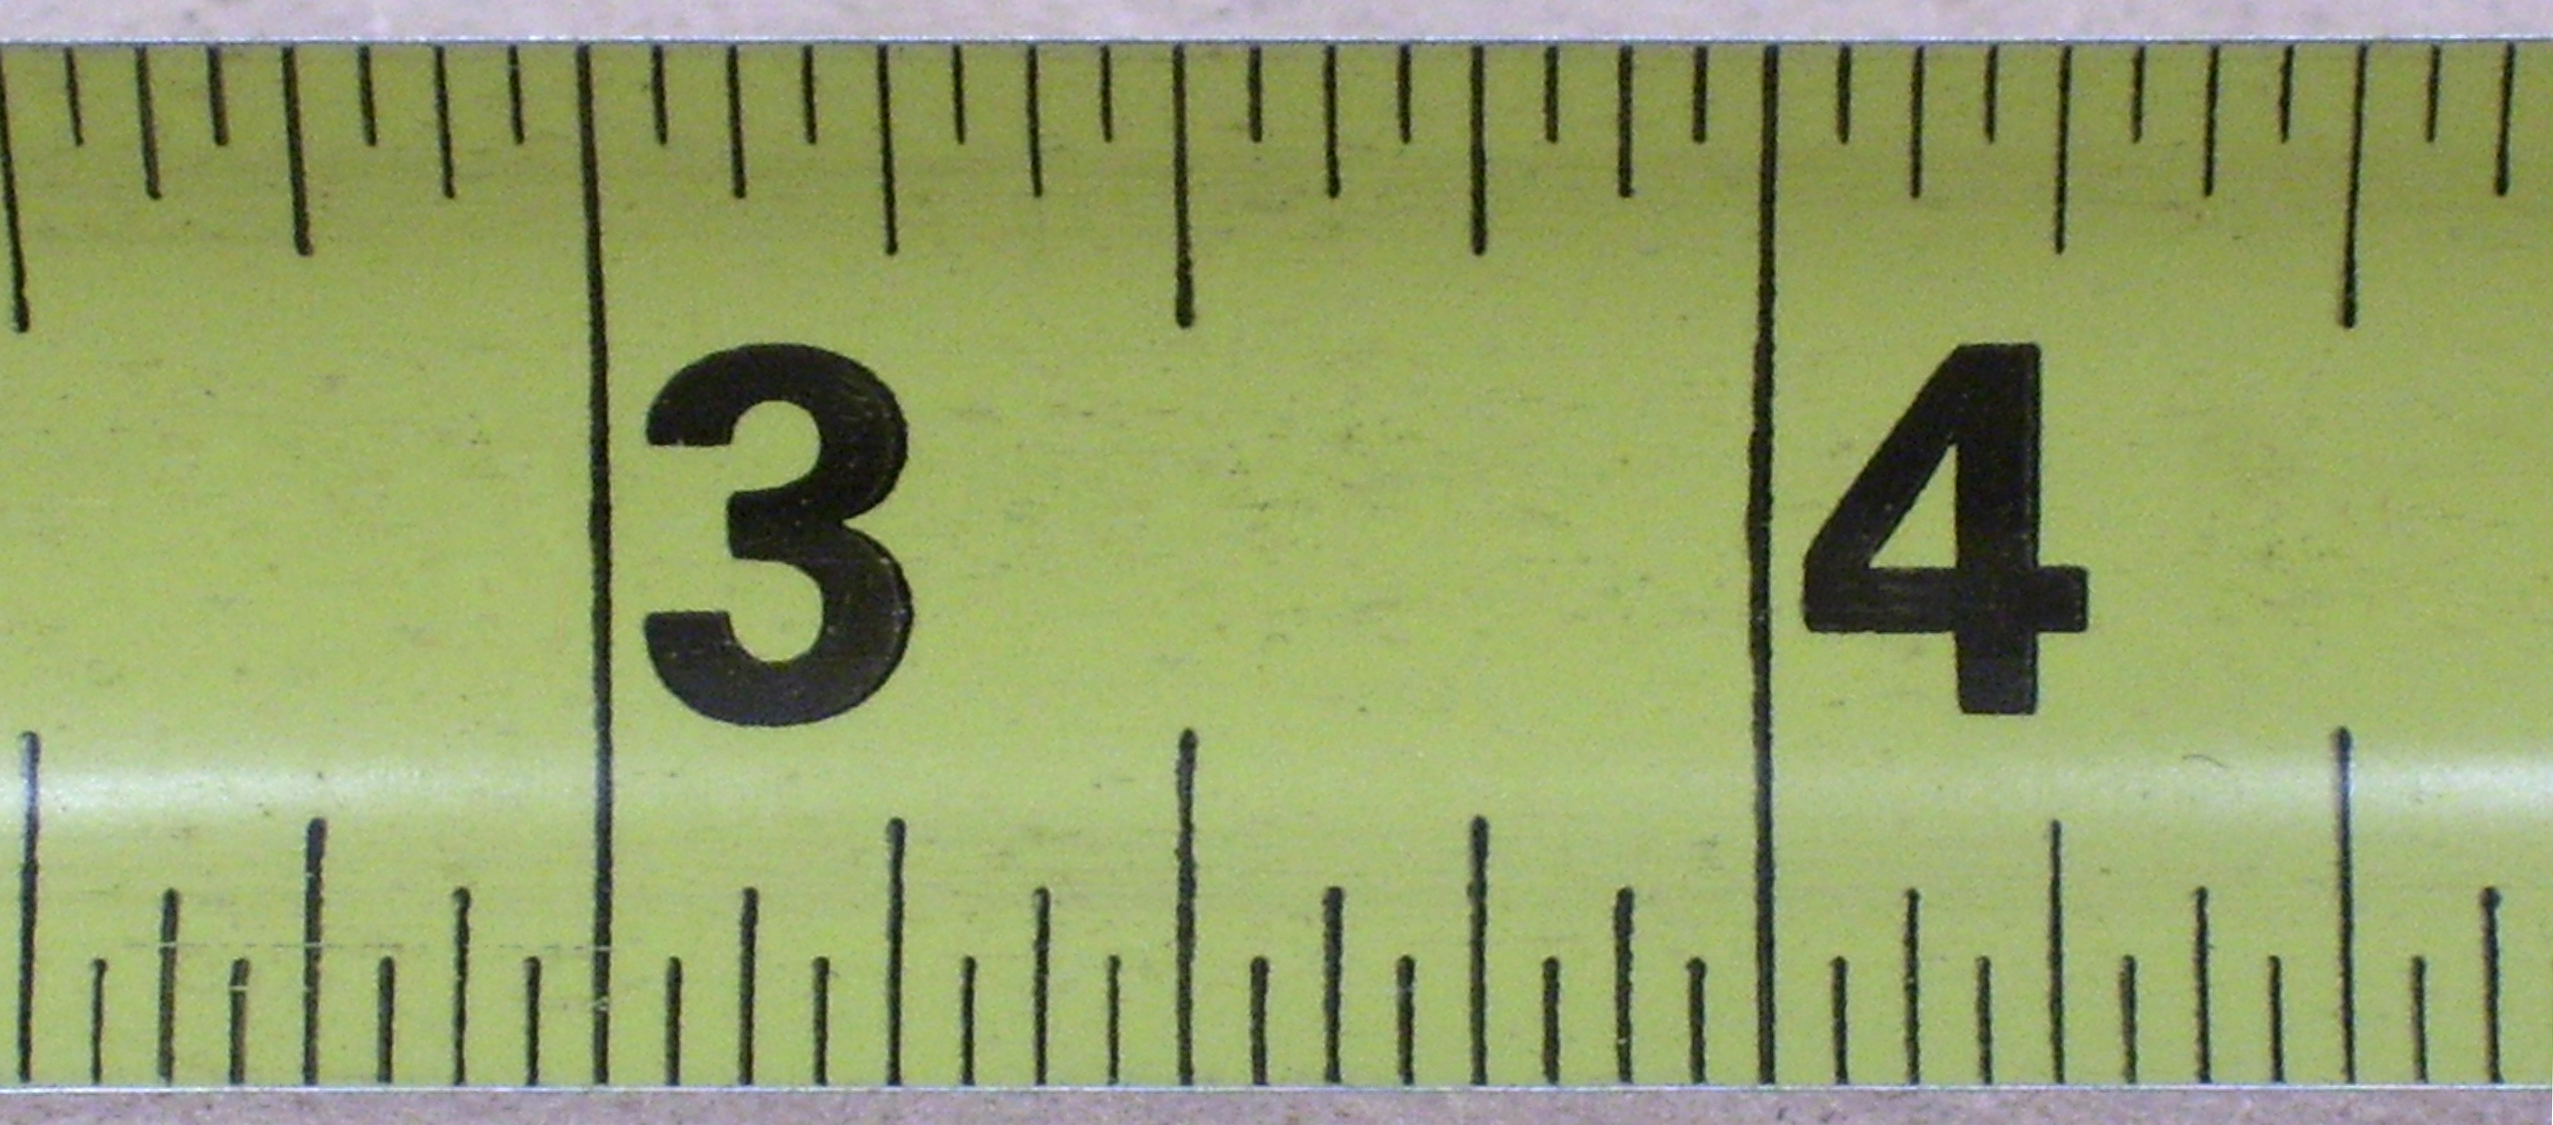 what is 21/32 on a ruler